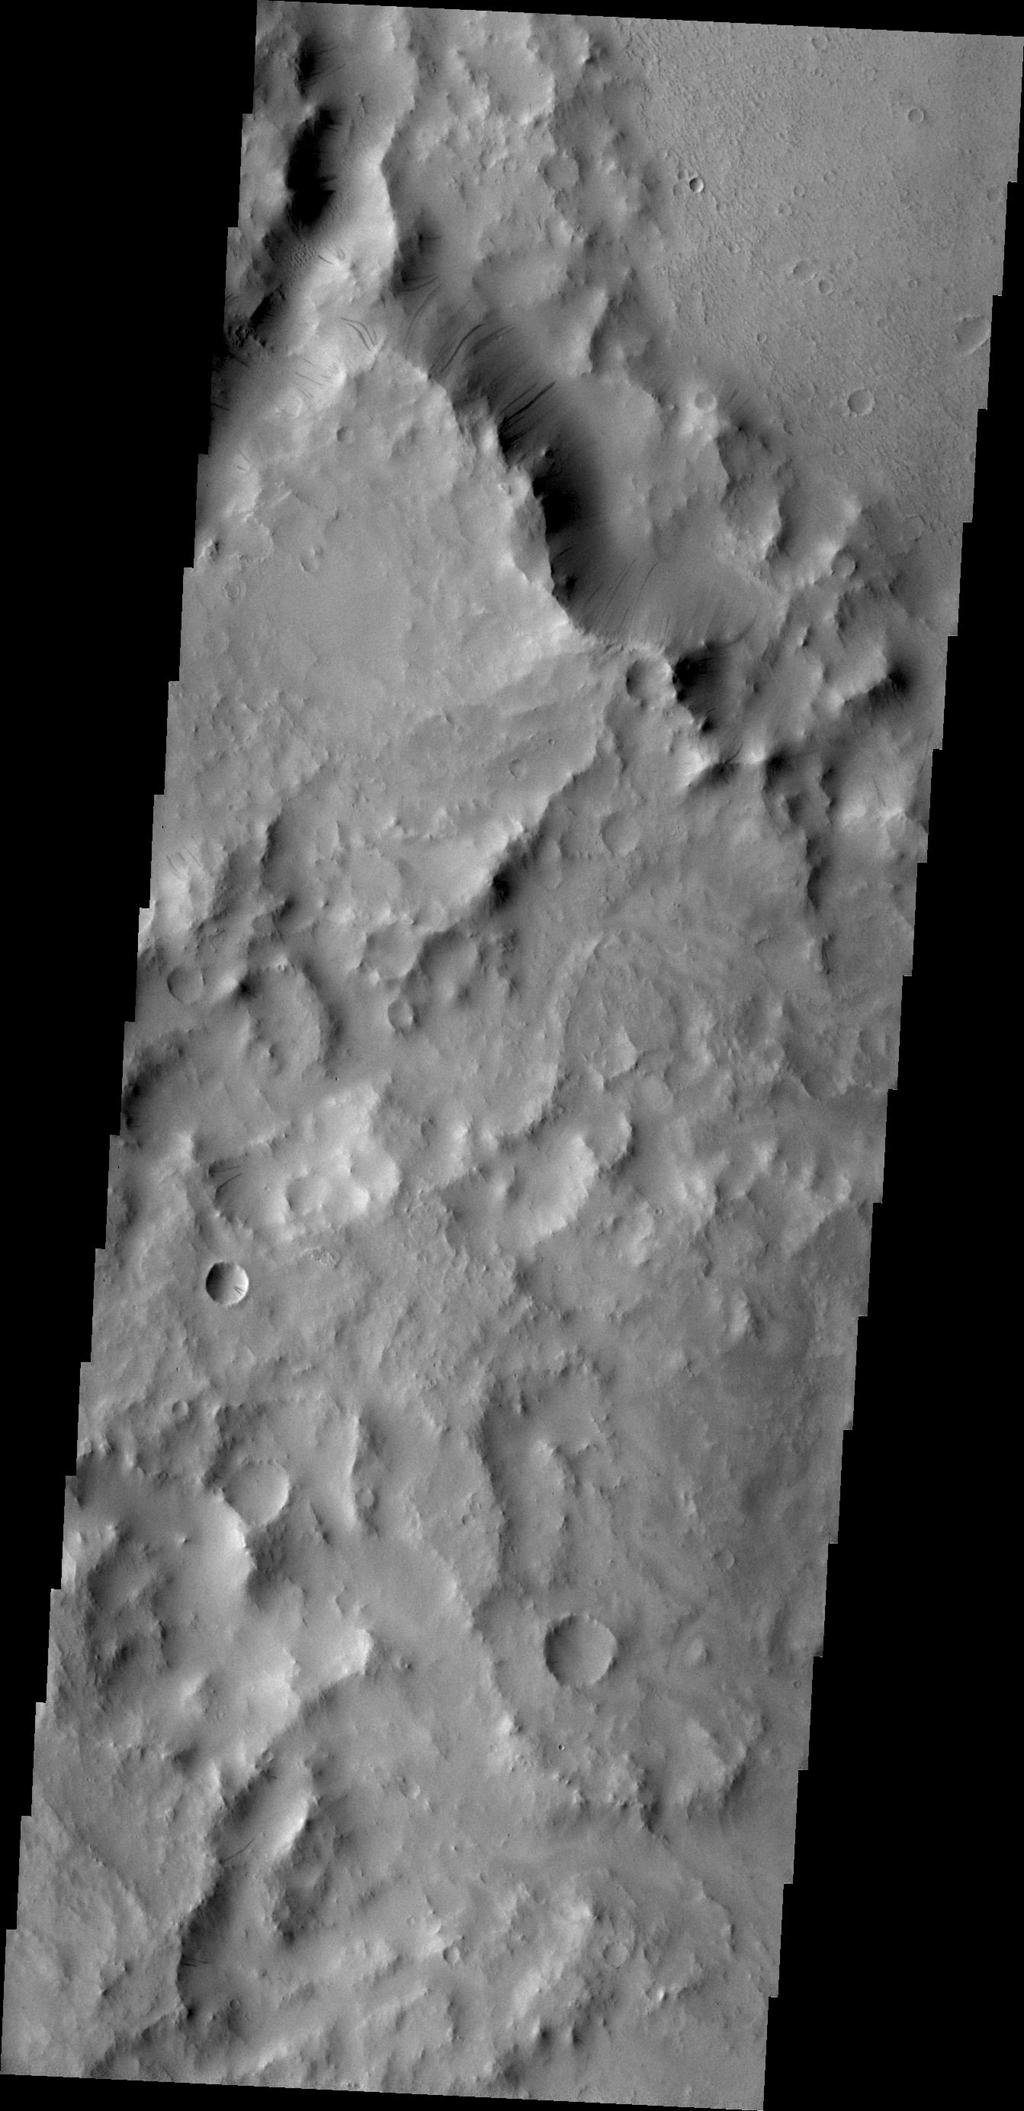 Dark slope streaks mark this crater rim in this image taken by NASA's 2001 Mars Odyssey. The crater is located within the much larger Tikhonravov Crater in Arabia Terra.